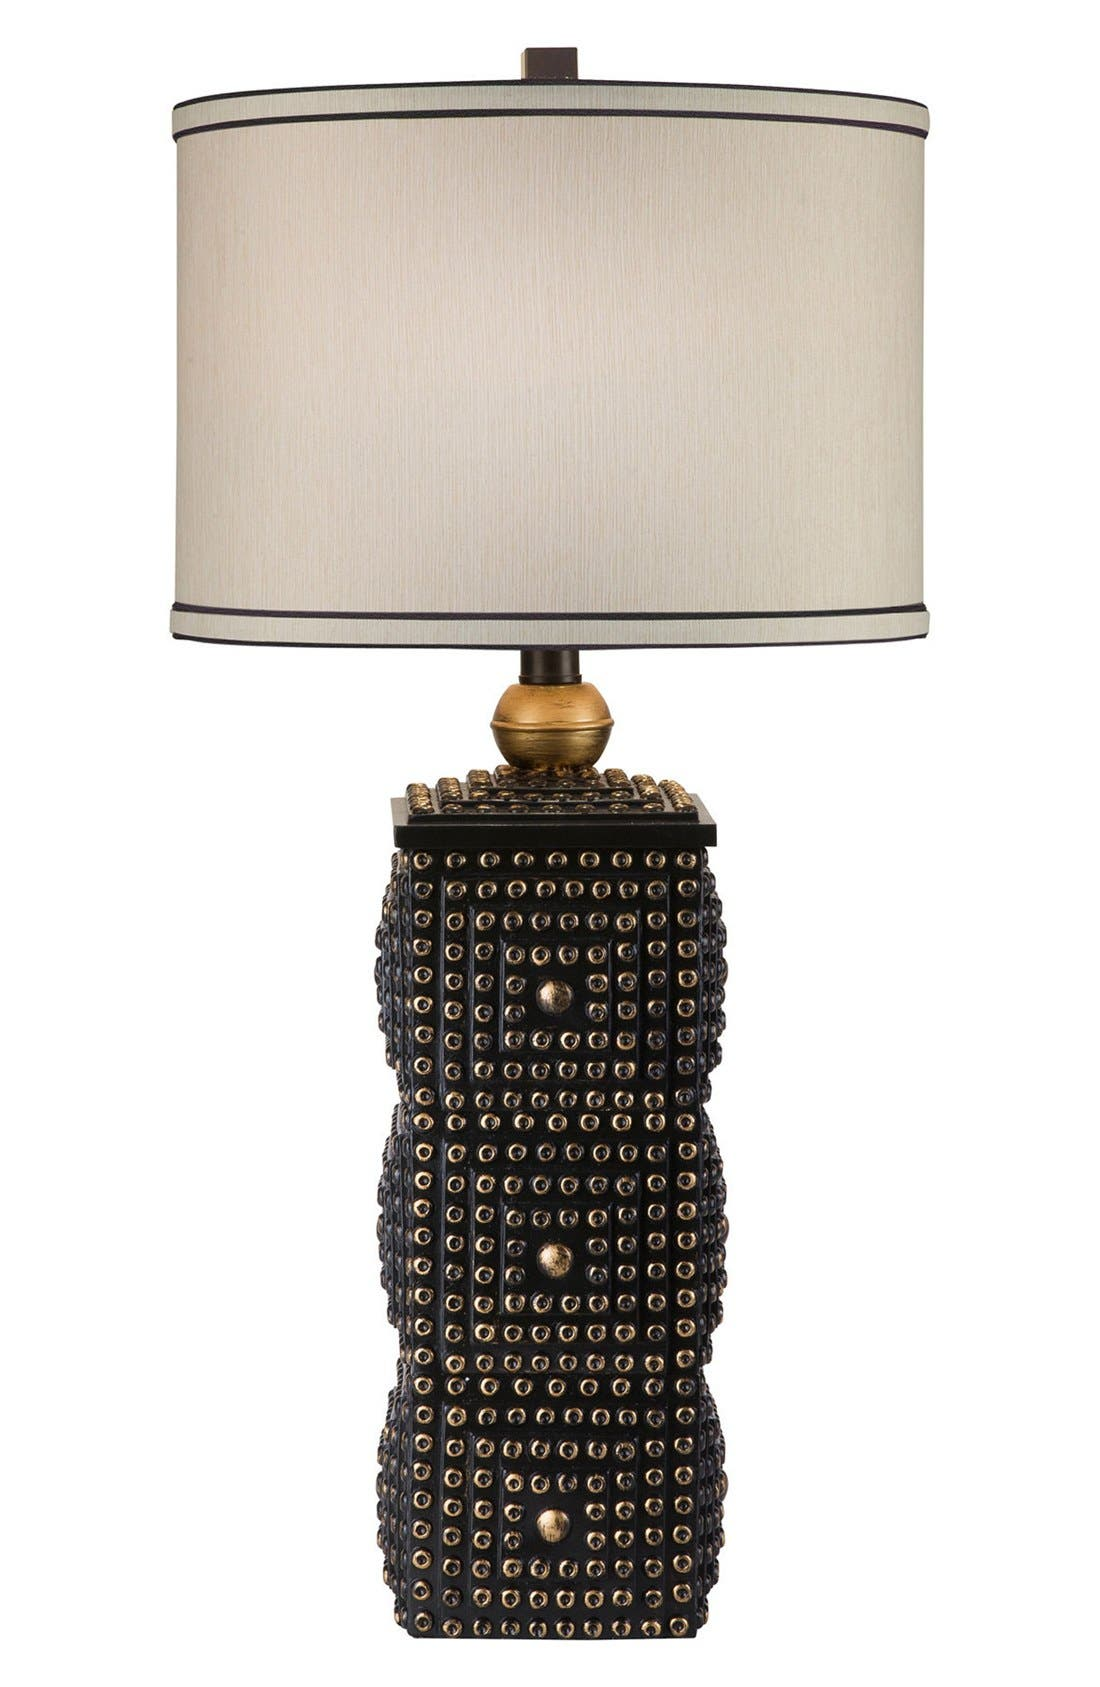 Main Image - JAlexander Square Stacked Table Lamp